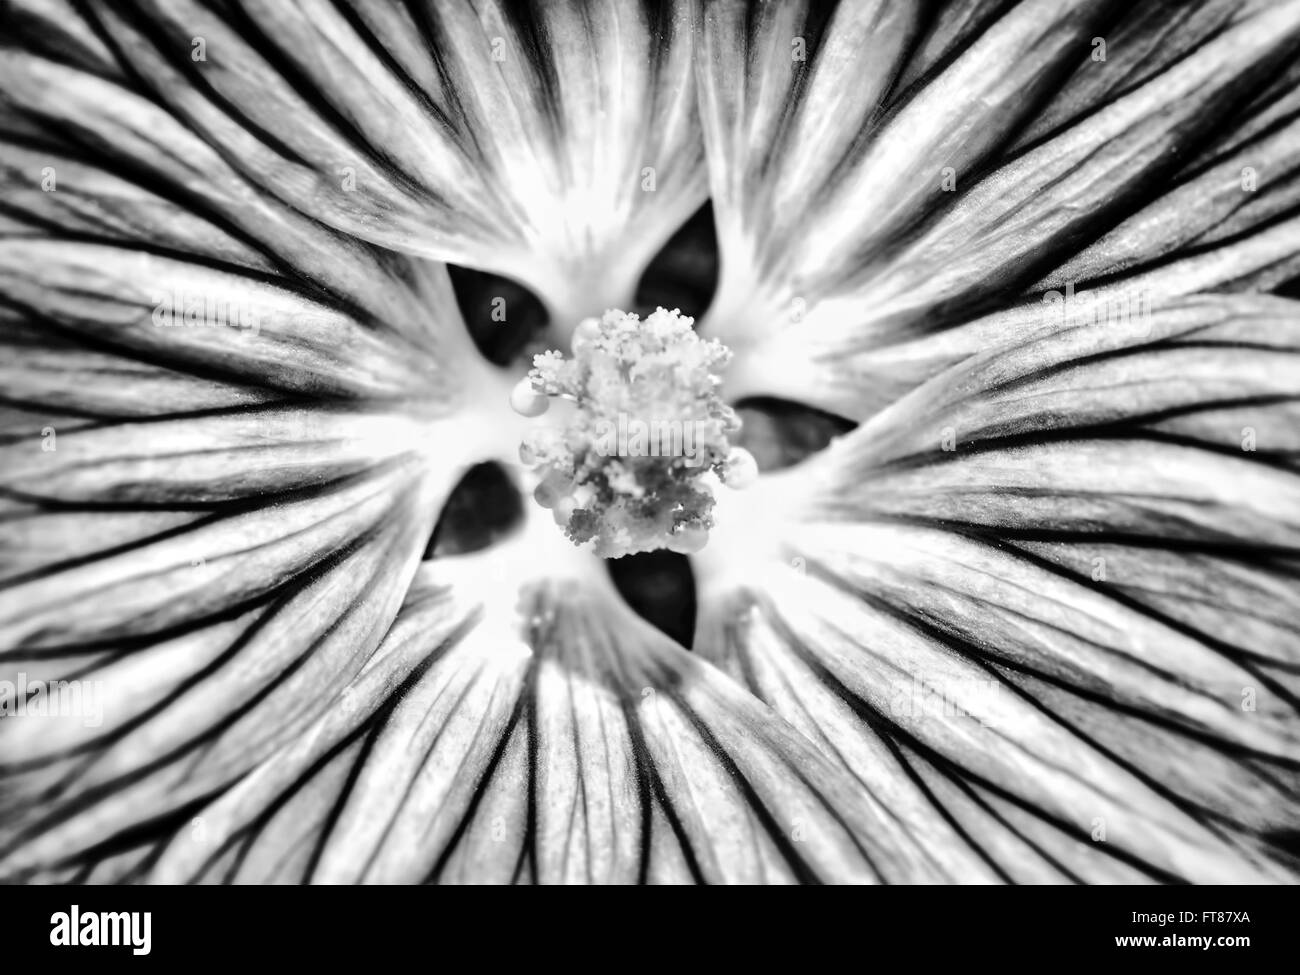 Closeup Black And White Photo Of Gerbera Flower Detail